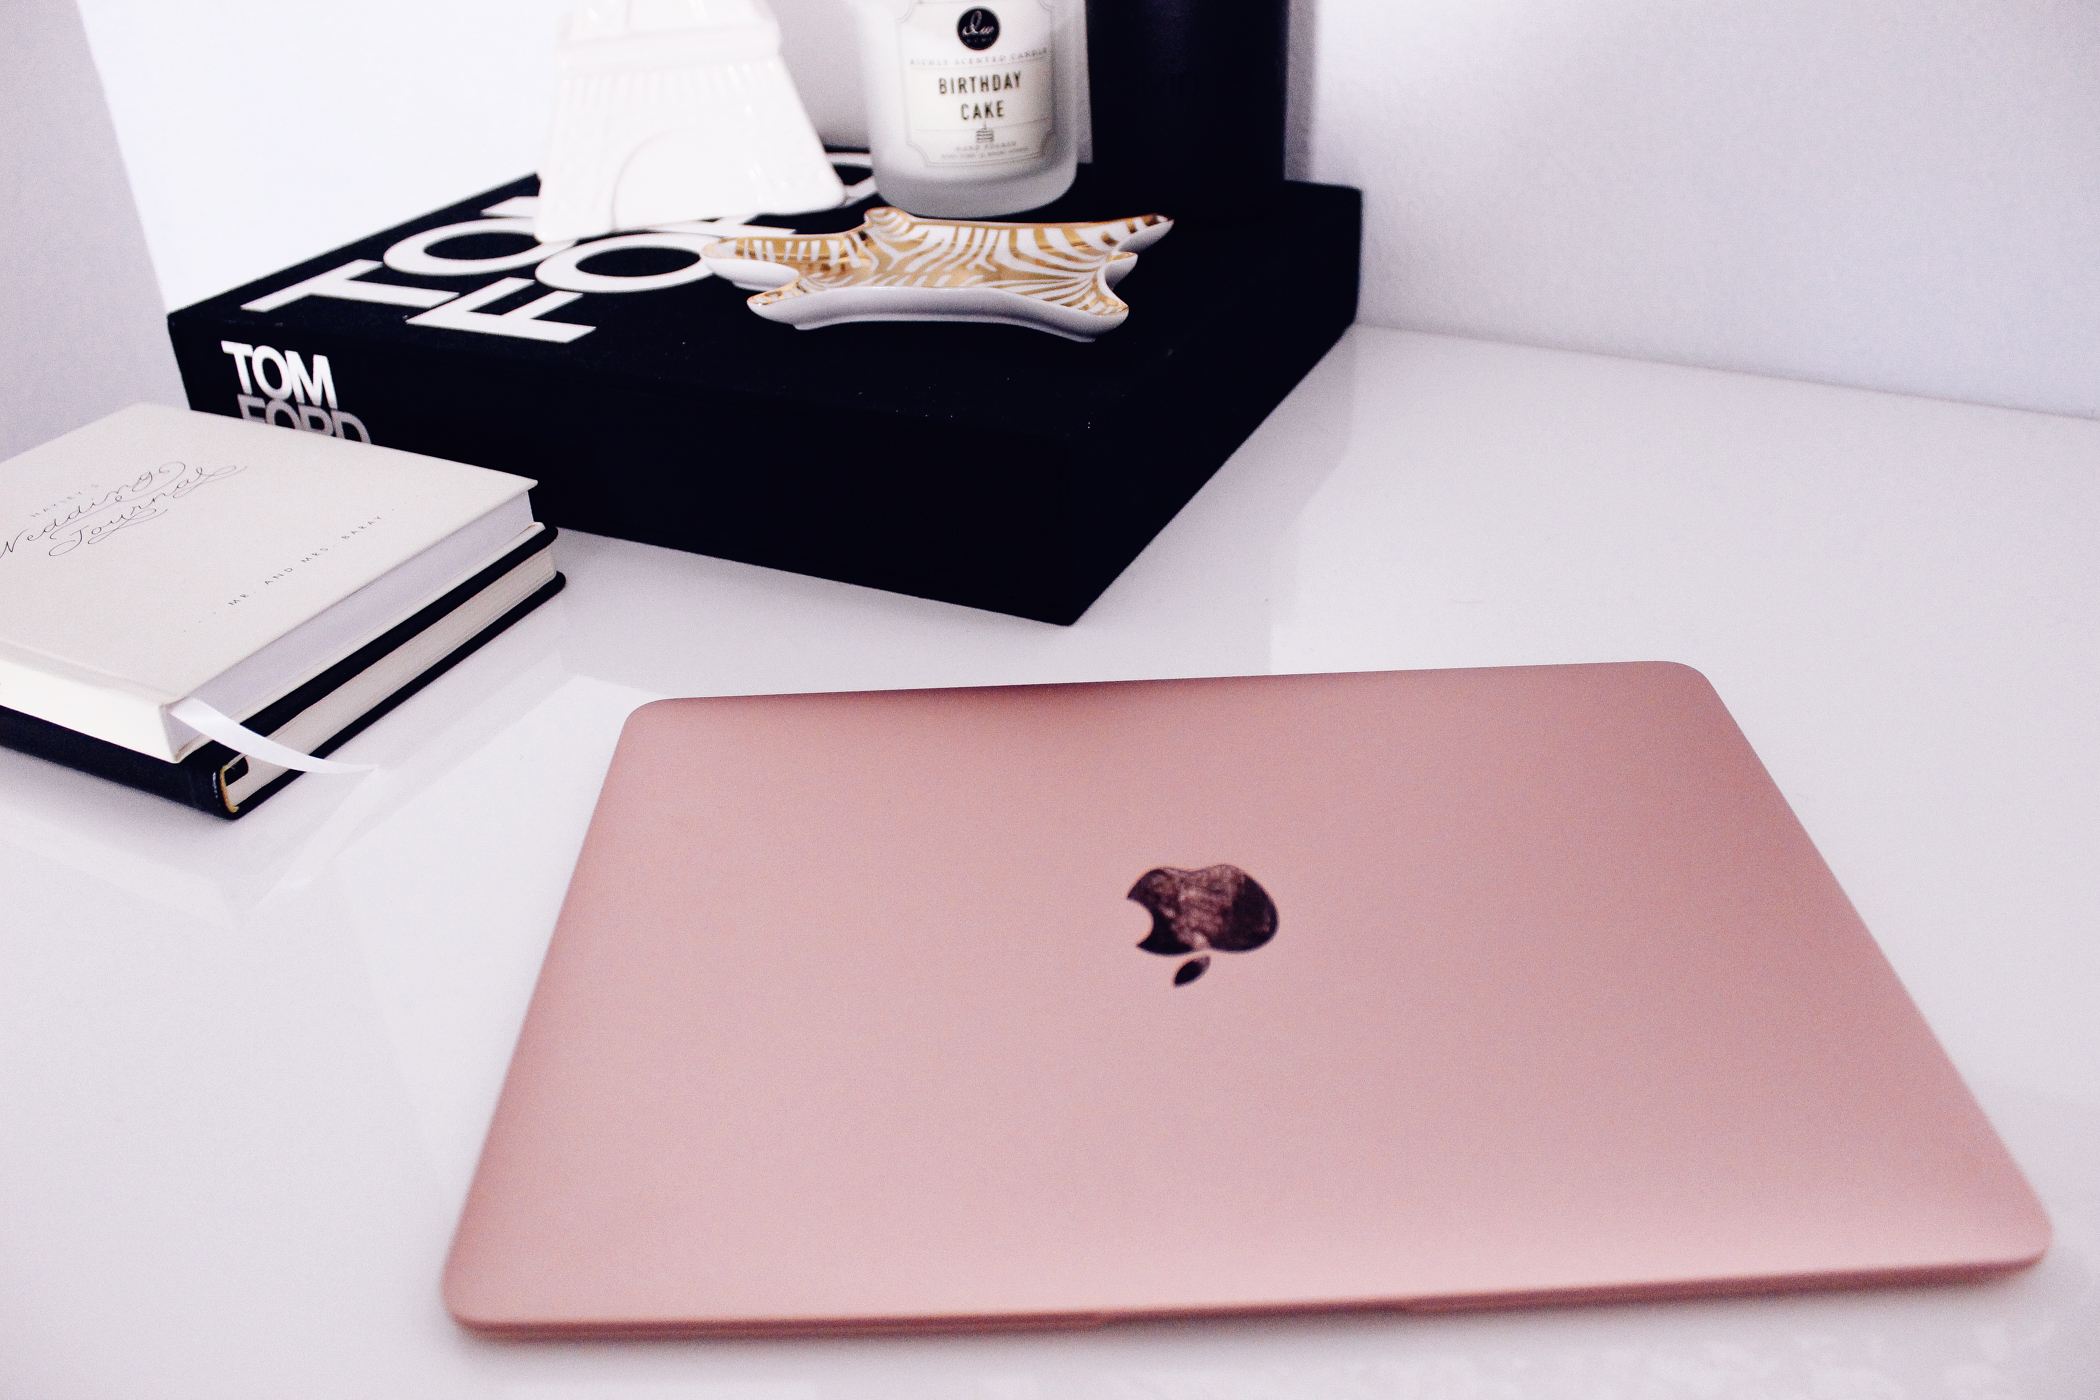 The Rose Gold Macbook